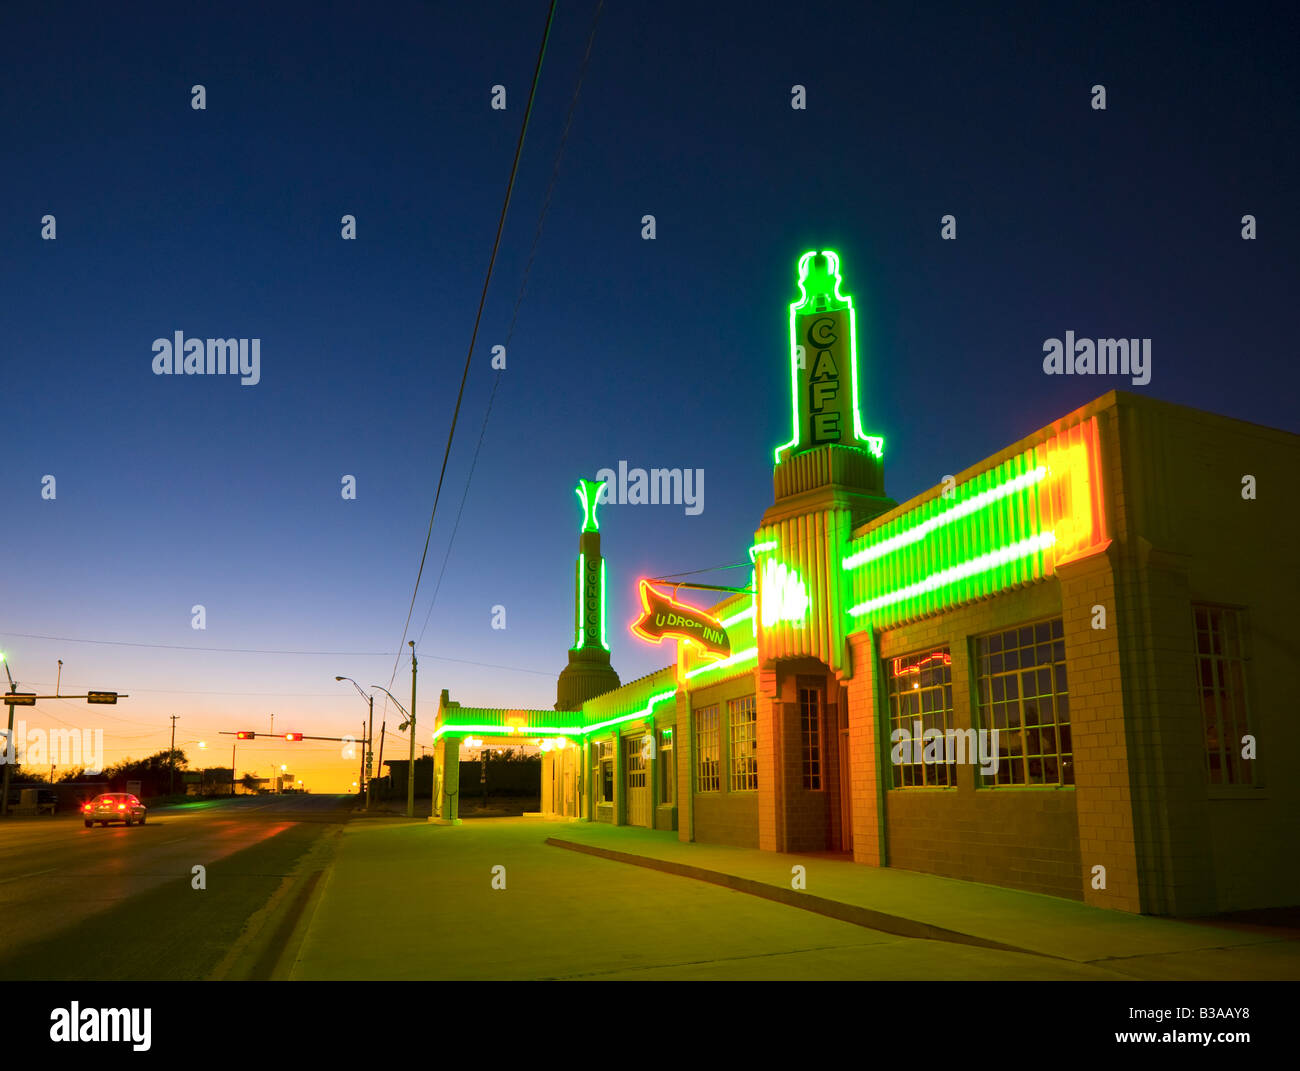 usa texas route 66 shamrock old art deco tower conoco gas stock photo royalty free image. Black Bedroom Furniture Sets. Home Design Ideas